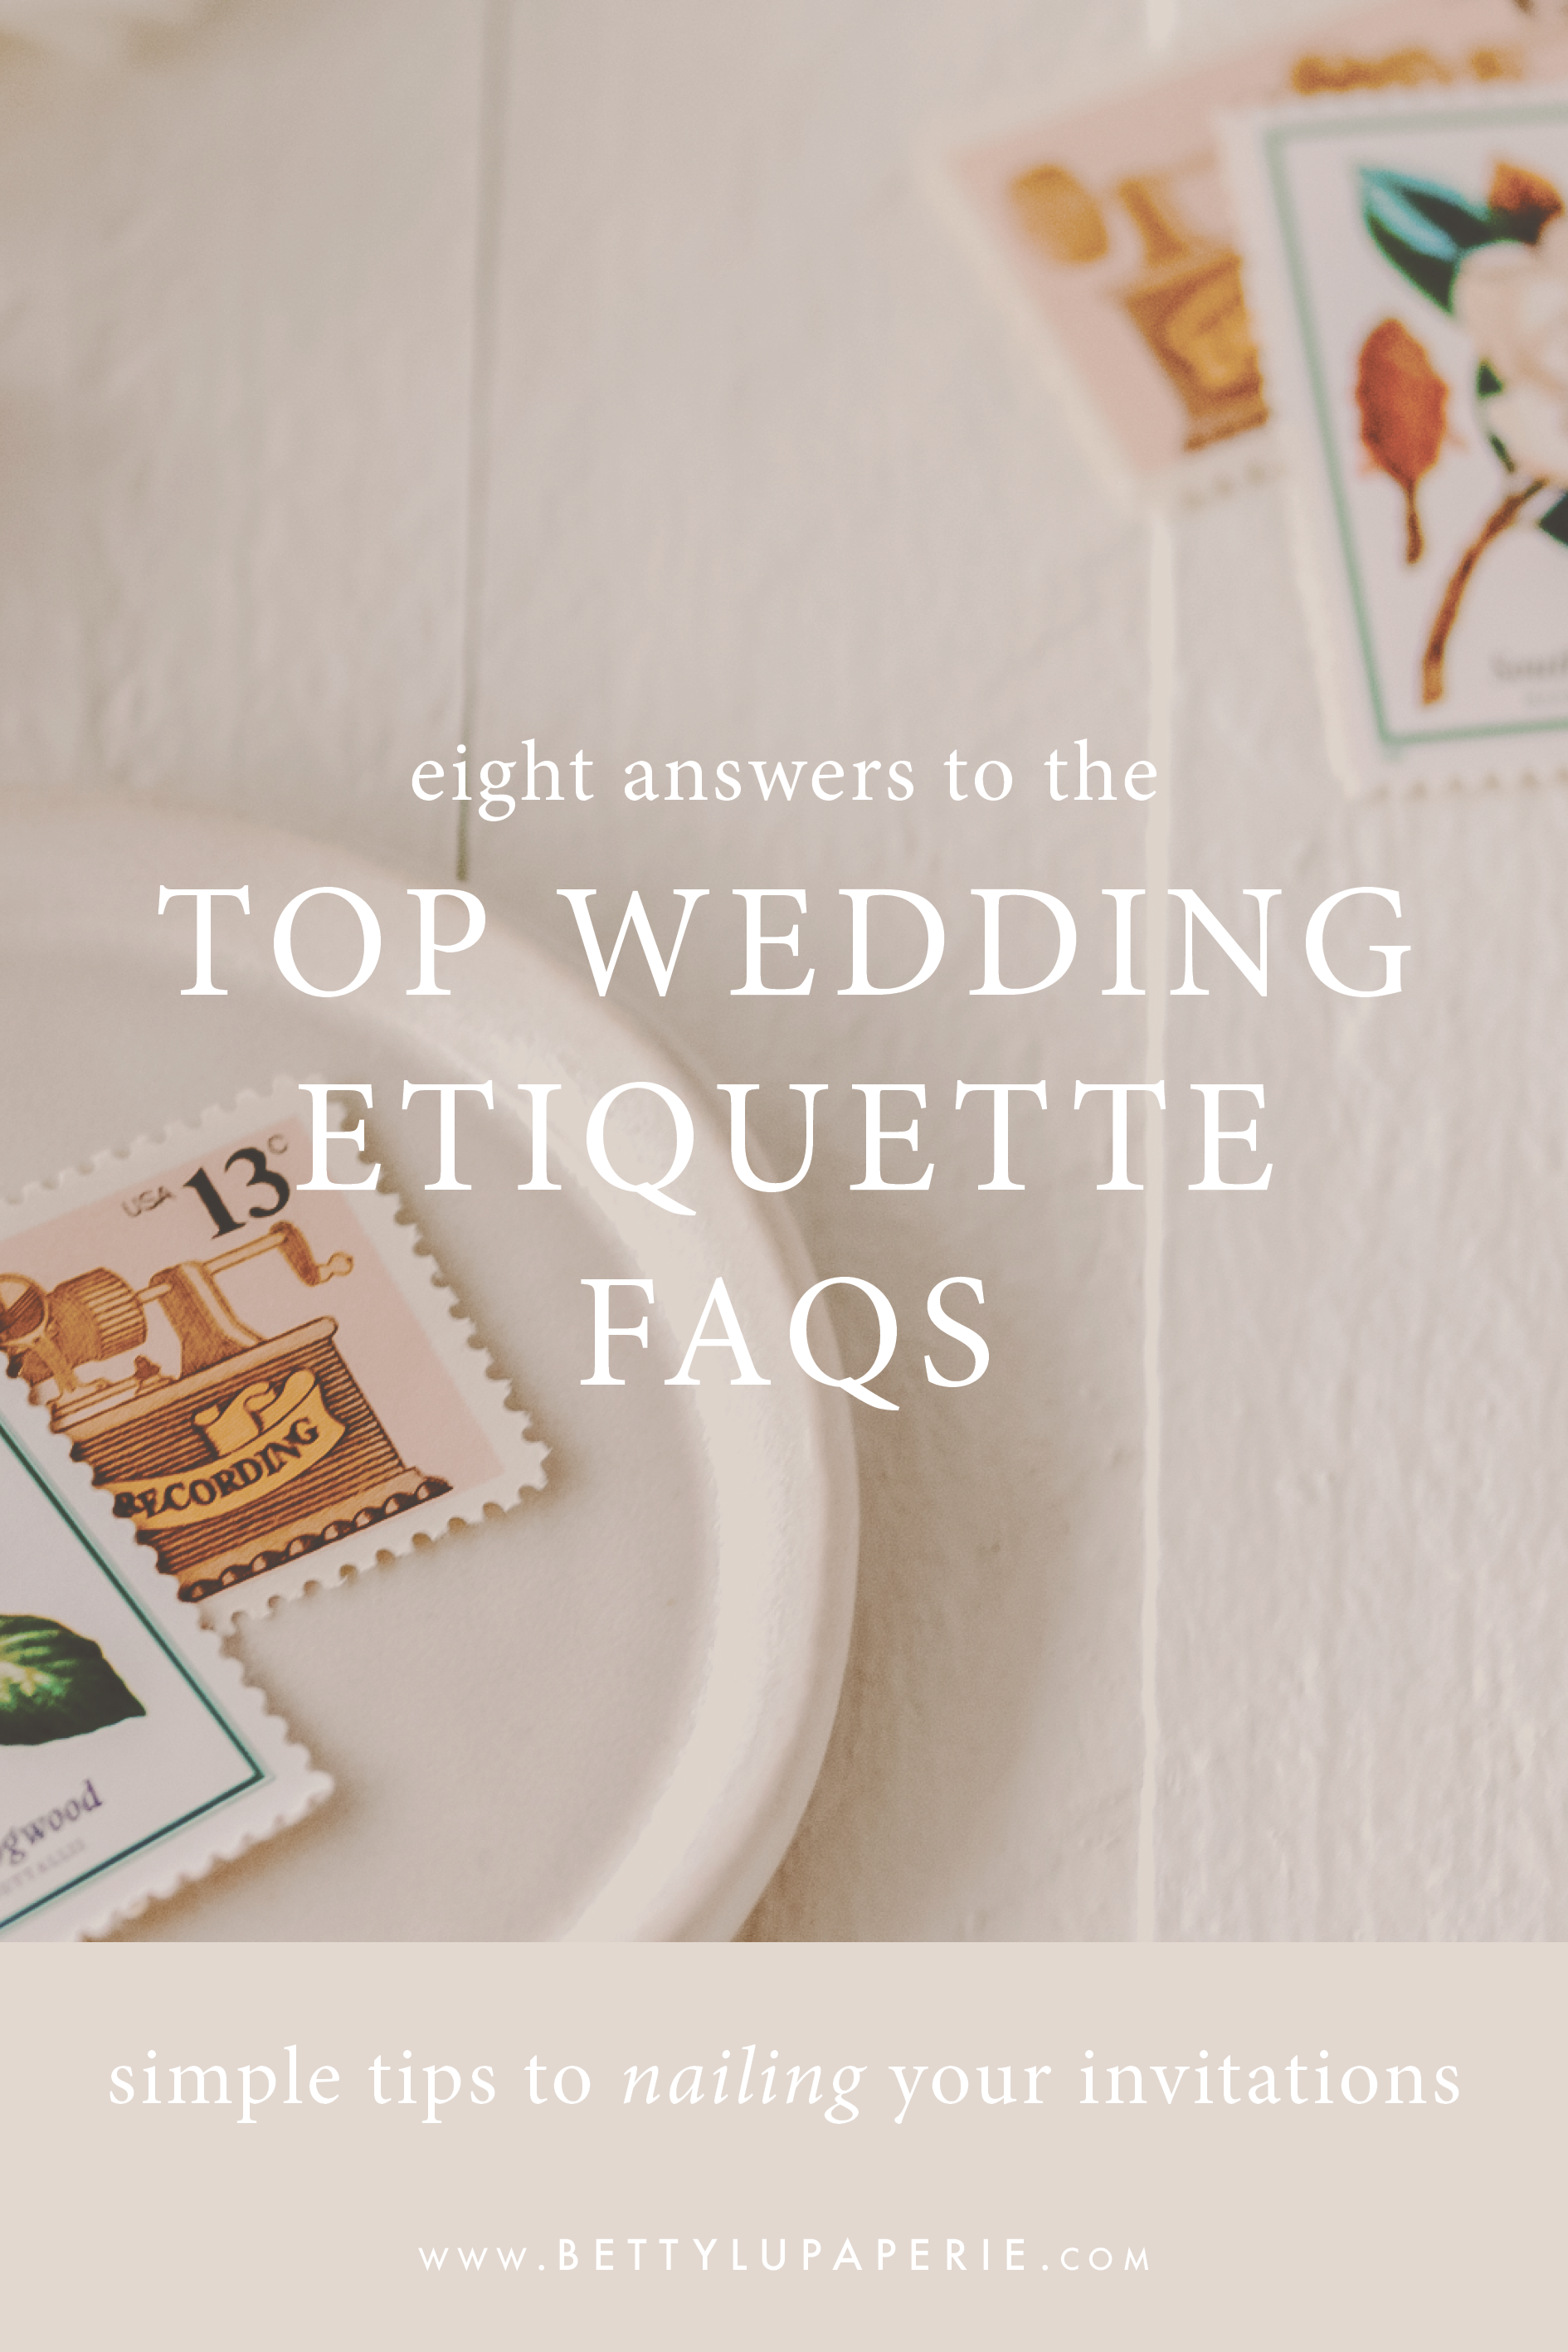 8 Answers To The Top Wedding Invitation Etiquette Faqs Wedding Invitation Etiquette Wedding Invitations Wedding Invitation Wording Examples